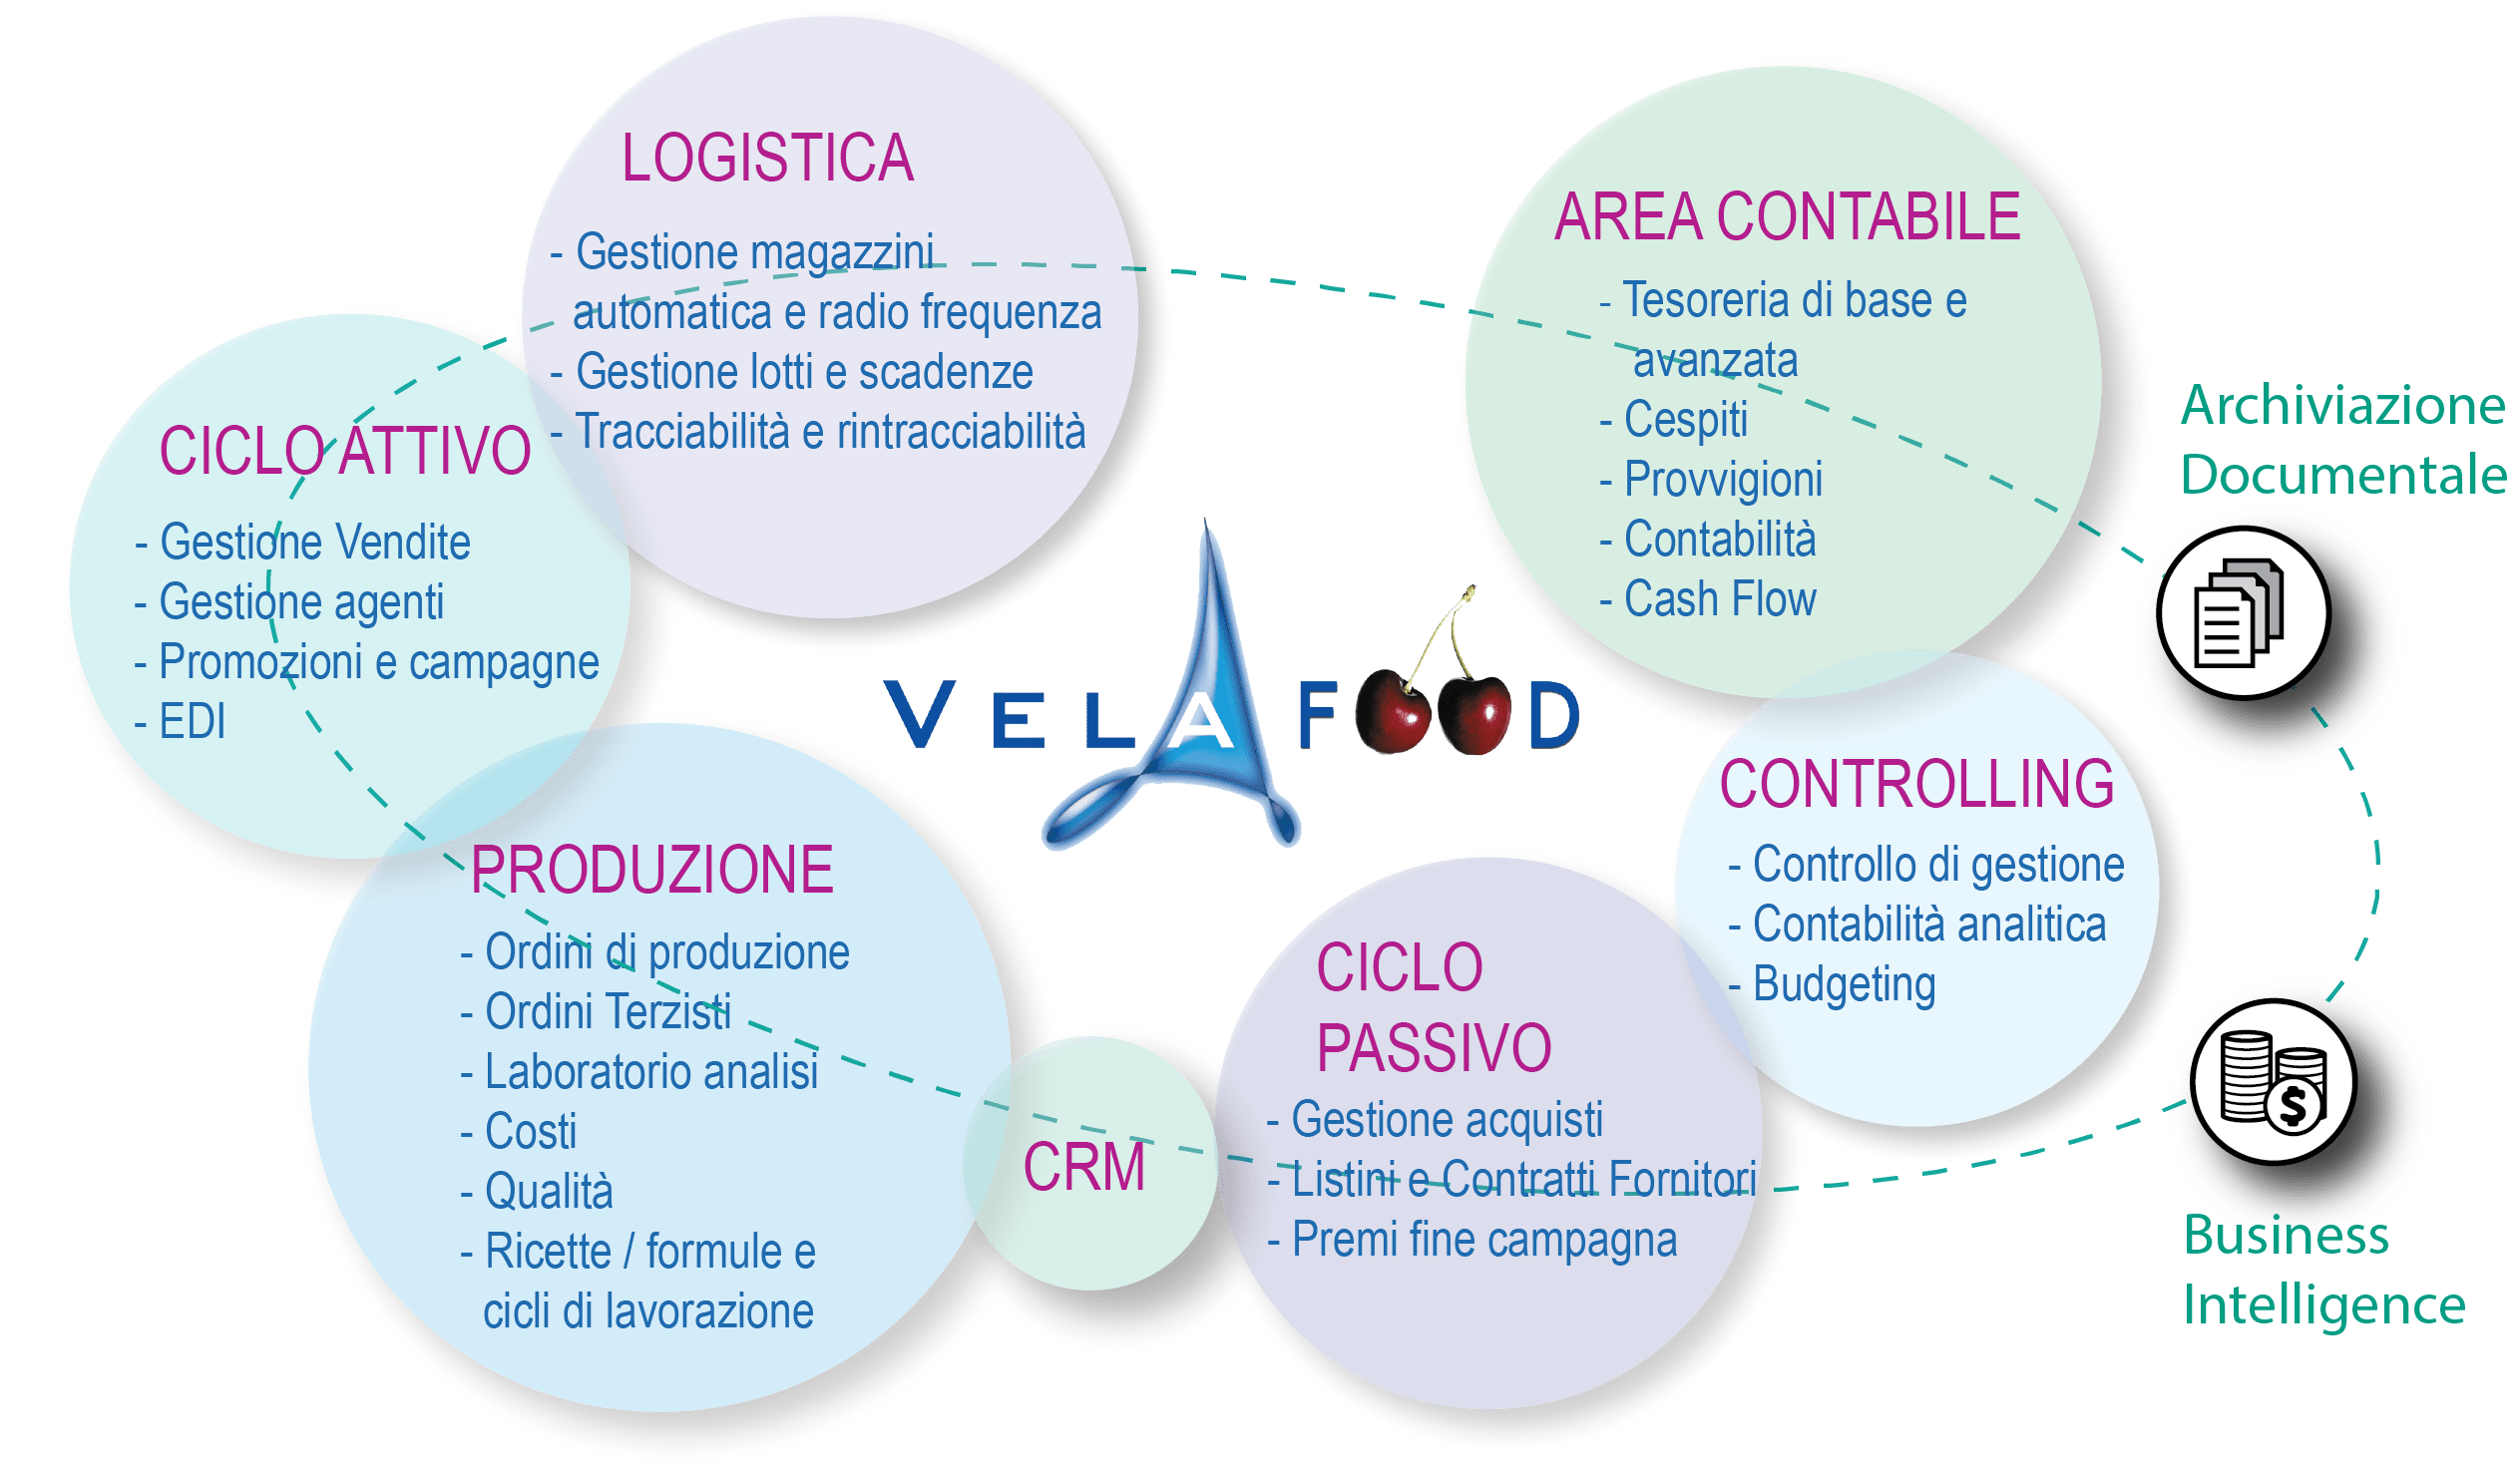 vela-food-software-gestionale-settore-alimentare